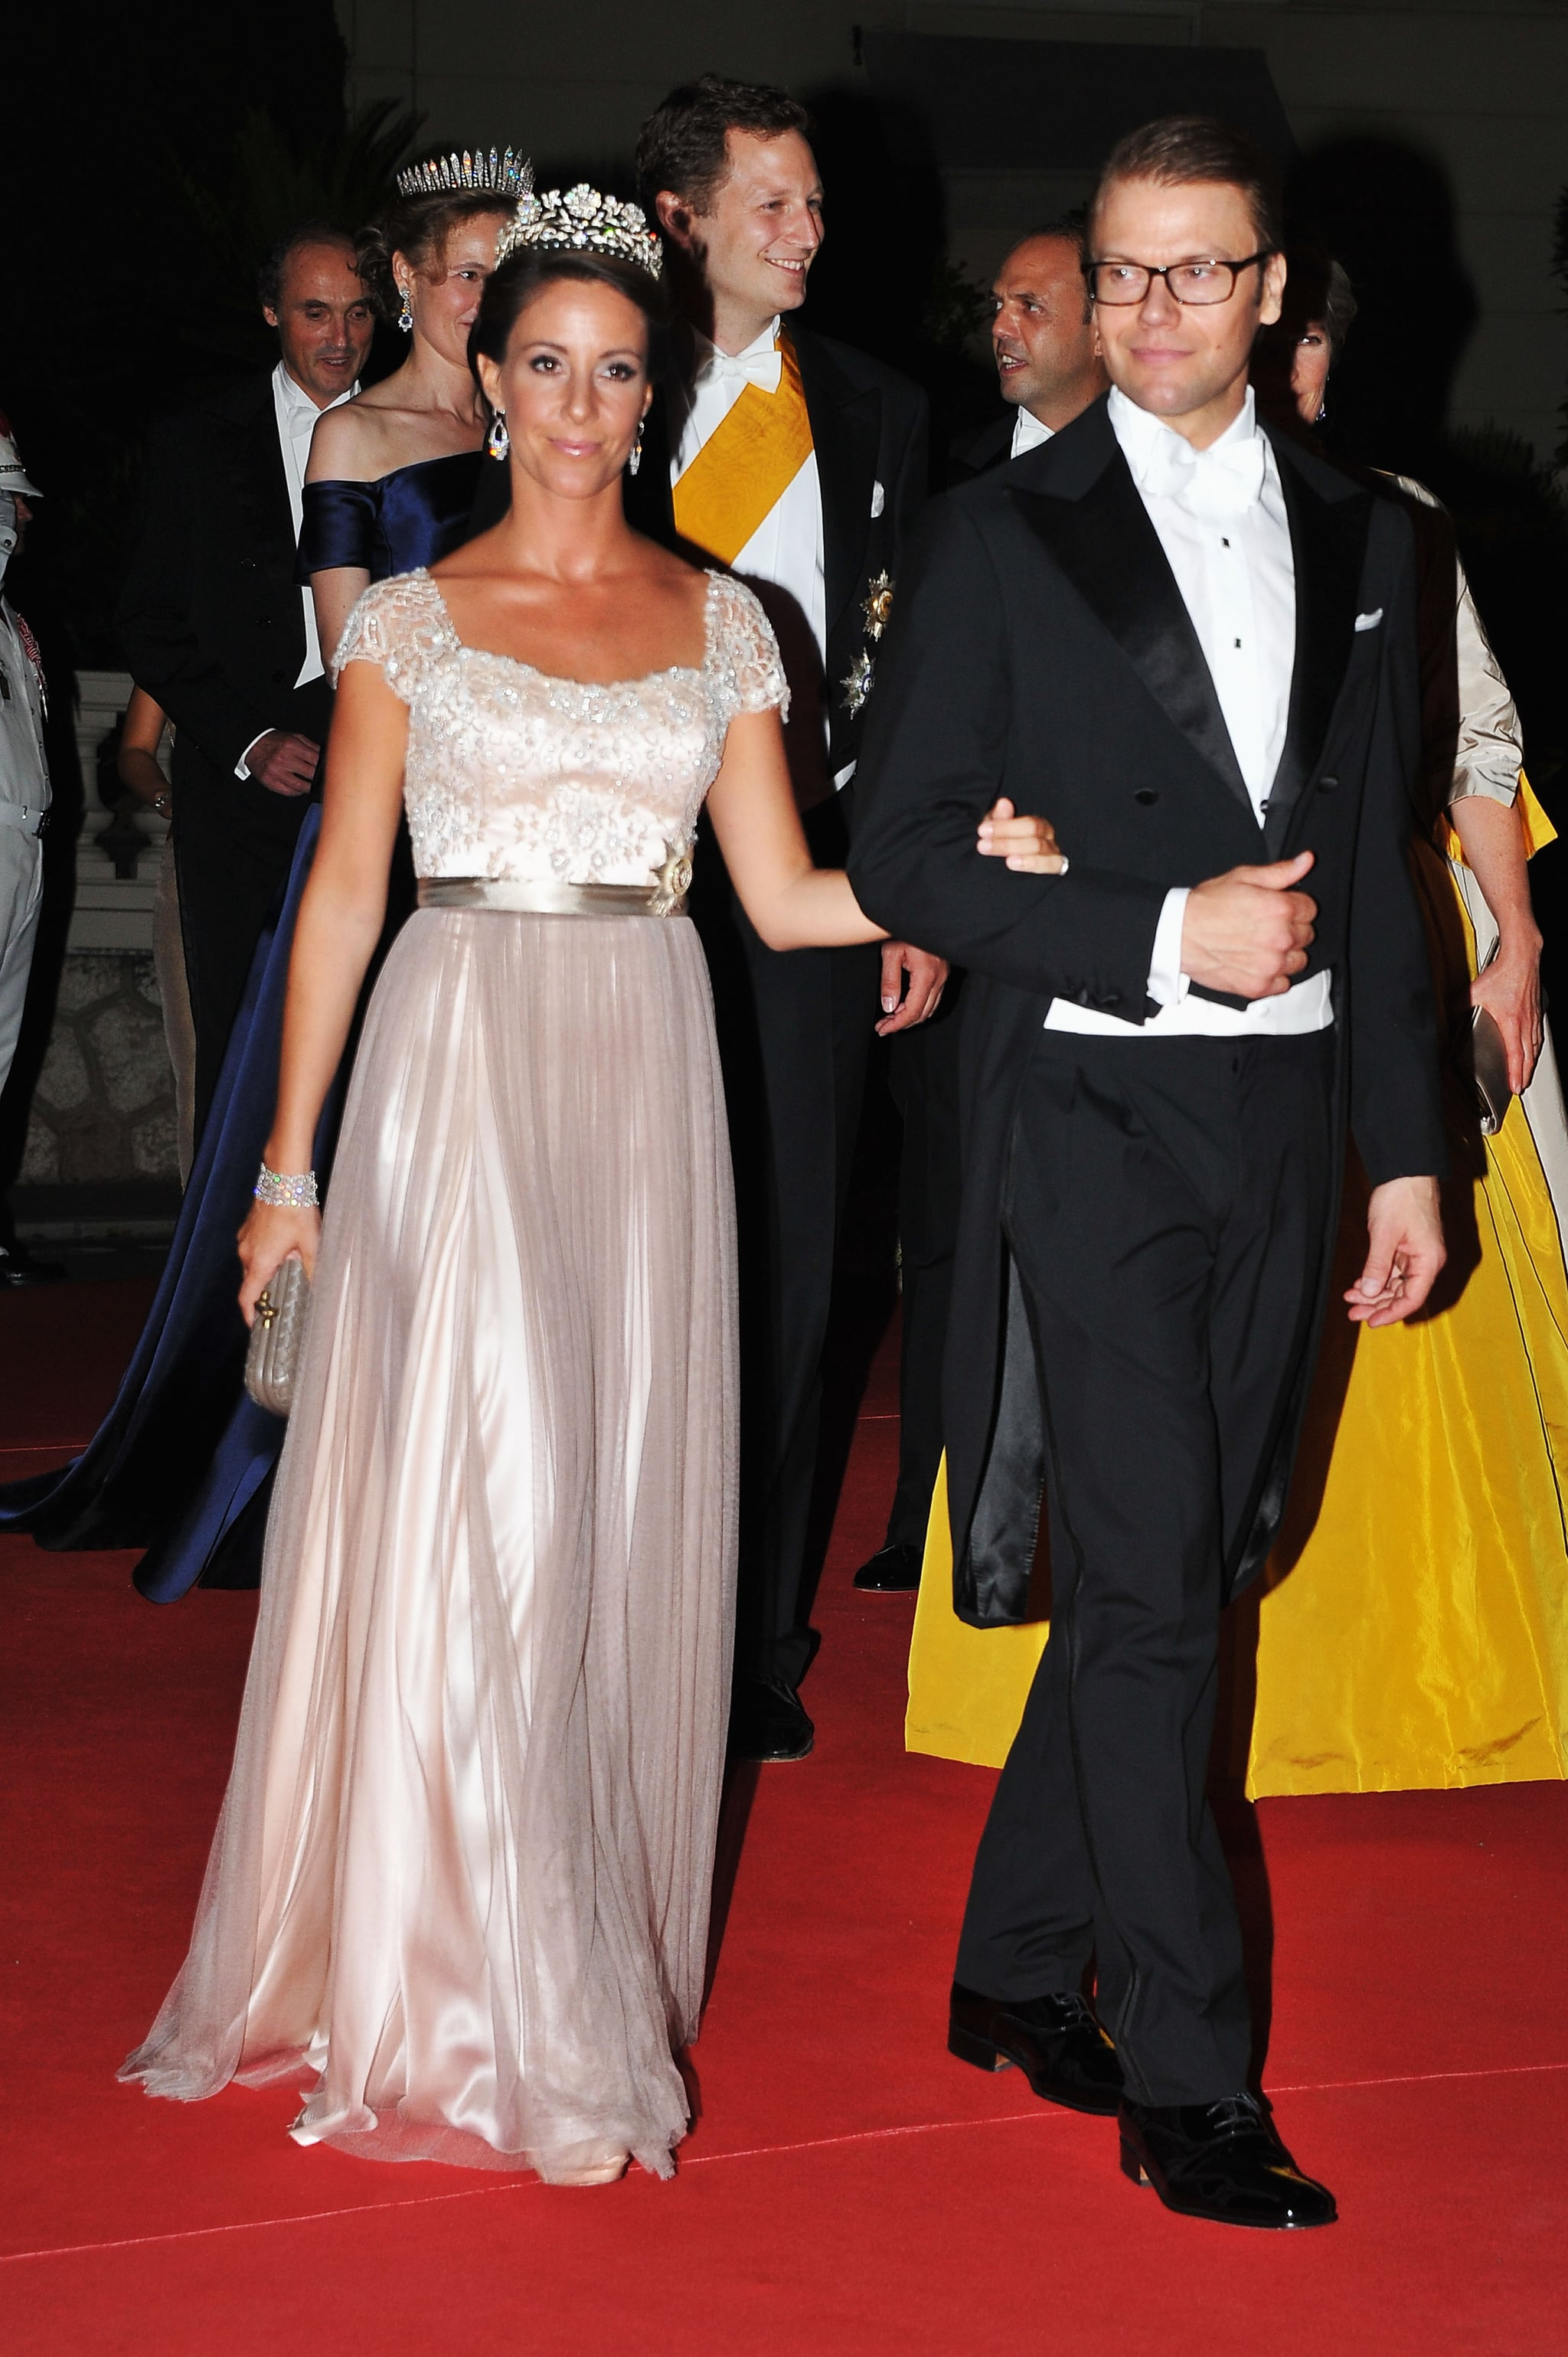 Prince Daniel, duke of Vastergotland, attended a dinner at Opera terraces after the religious wedding ceremony of Prince Albert II of Monaco and Princess Charlene of Monaco.